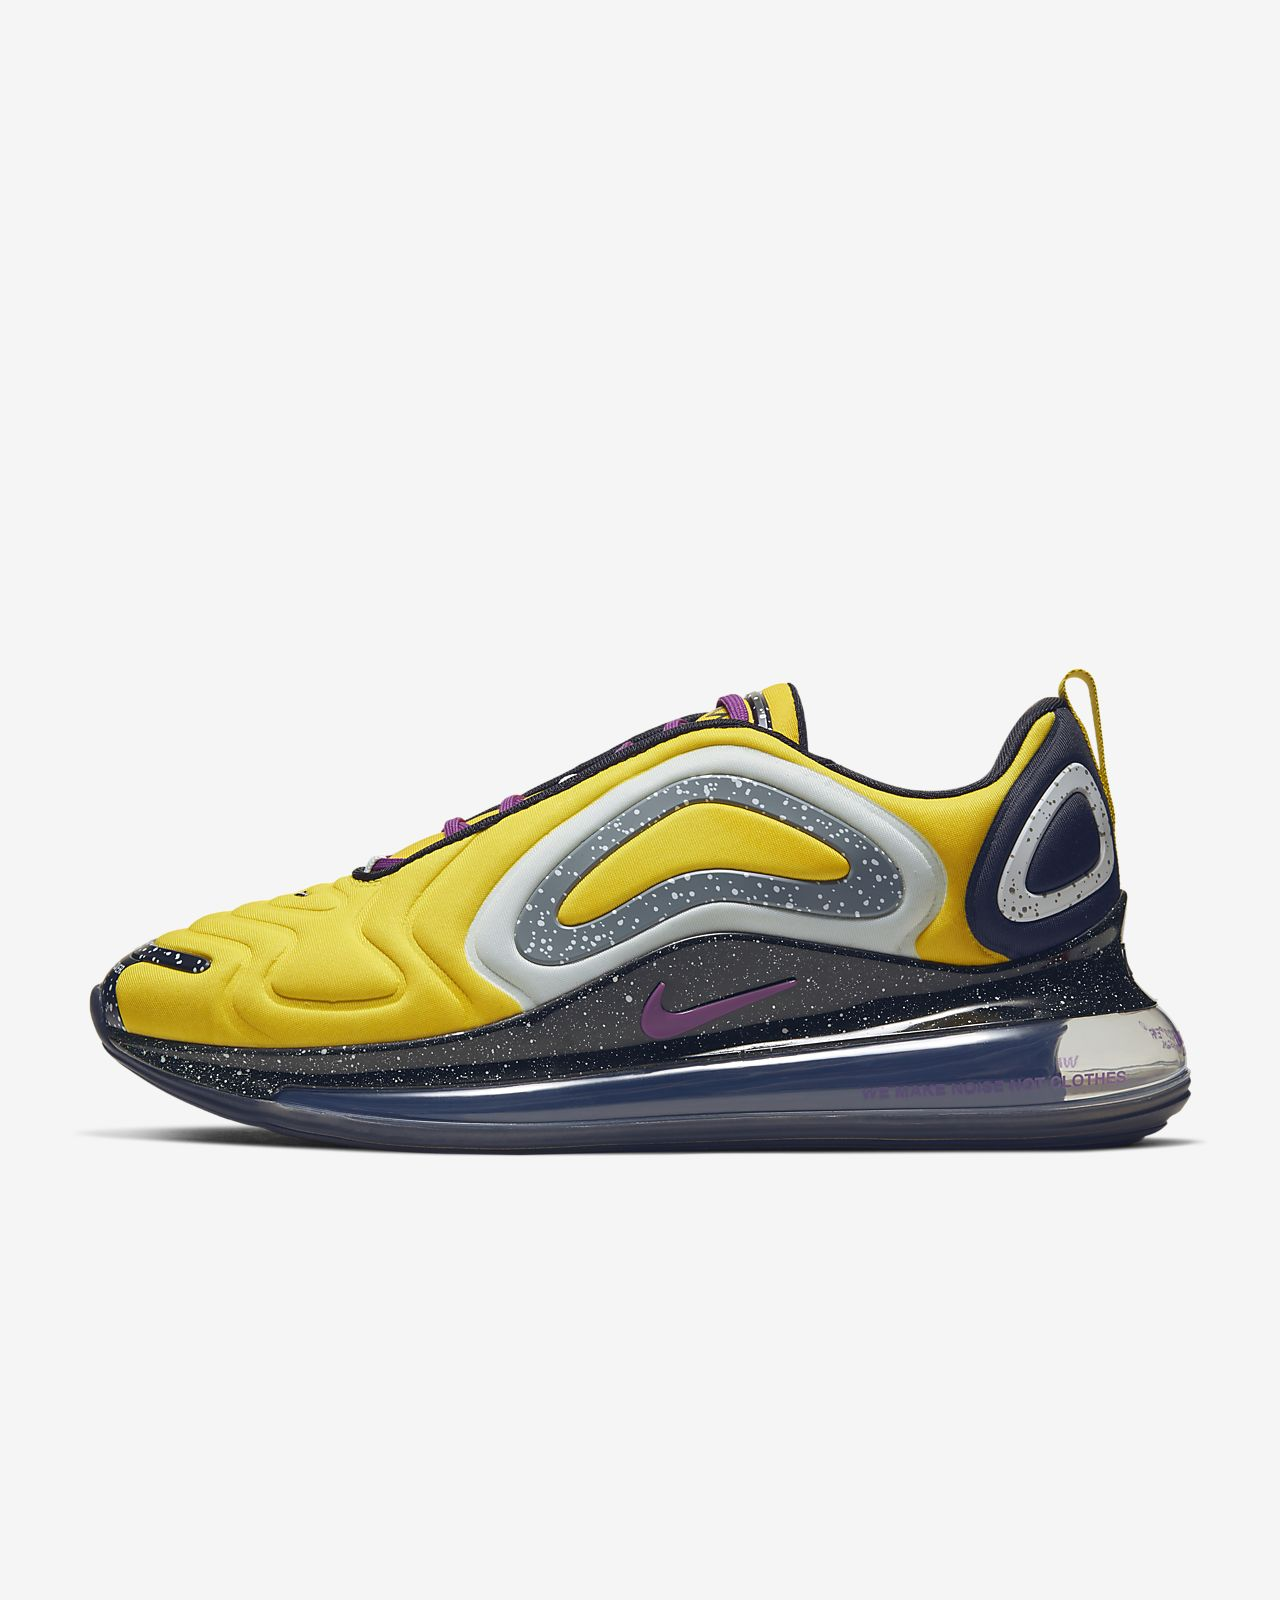 Nike x Undercover Air Max 720 鞋款